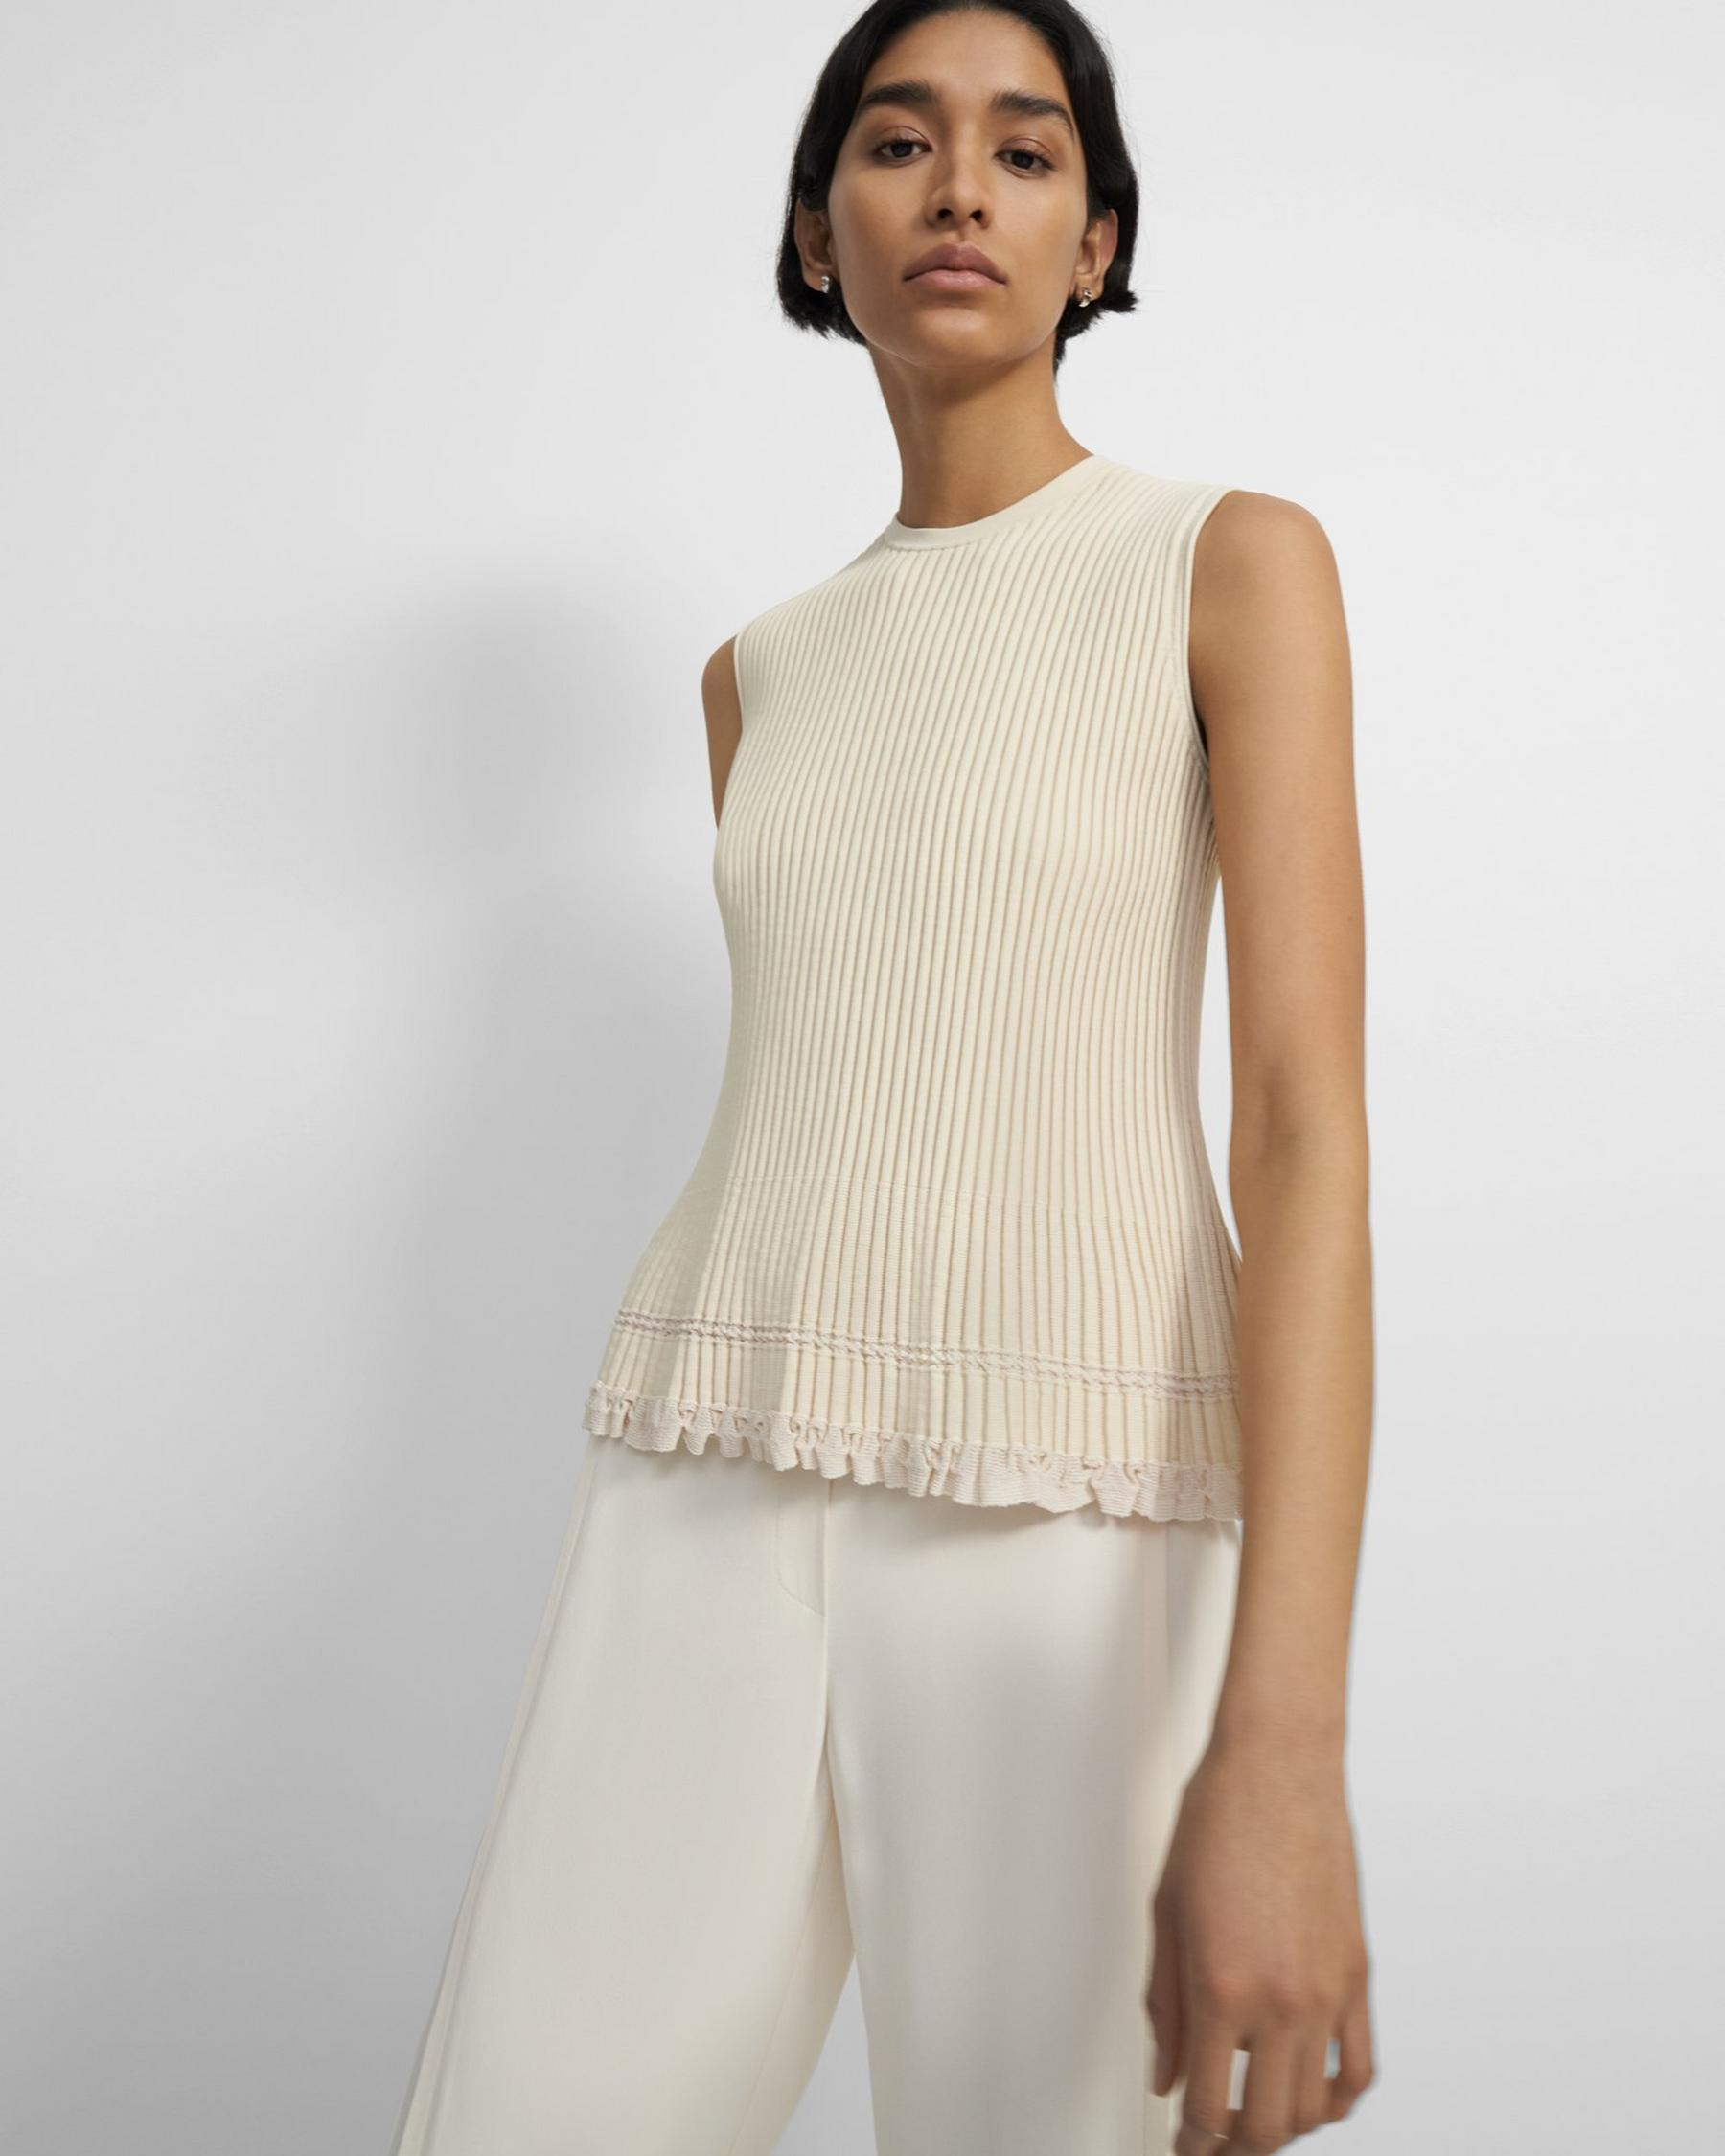 Shell Top in Eco Knit 0